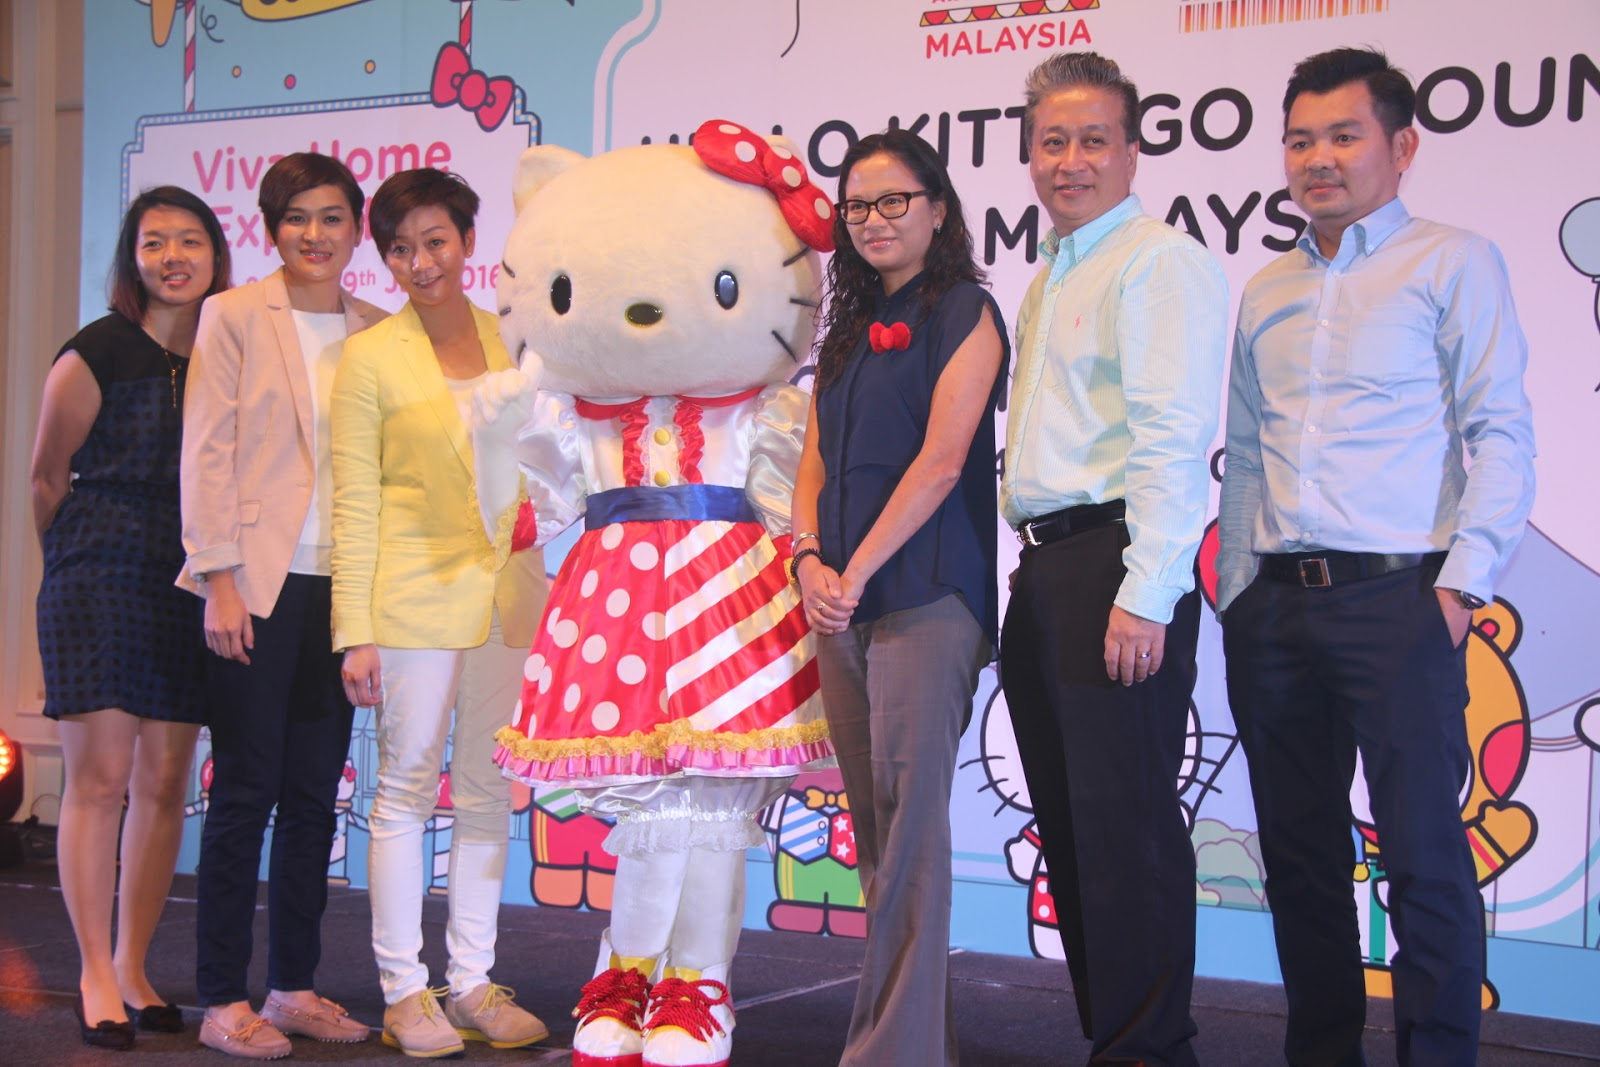 First ever Hello Kitty interactive carnival in Malaysia